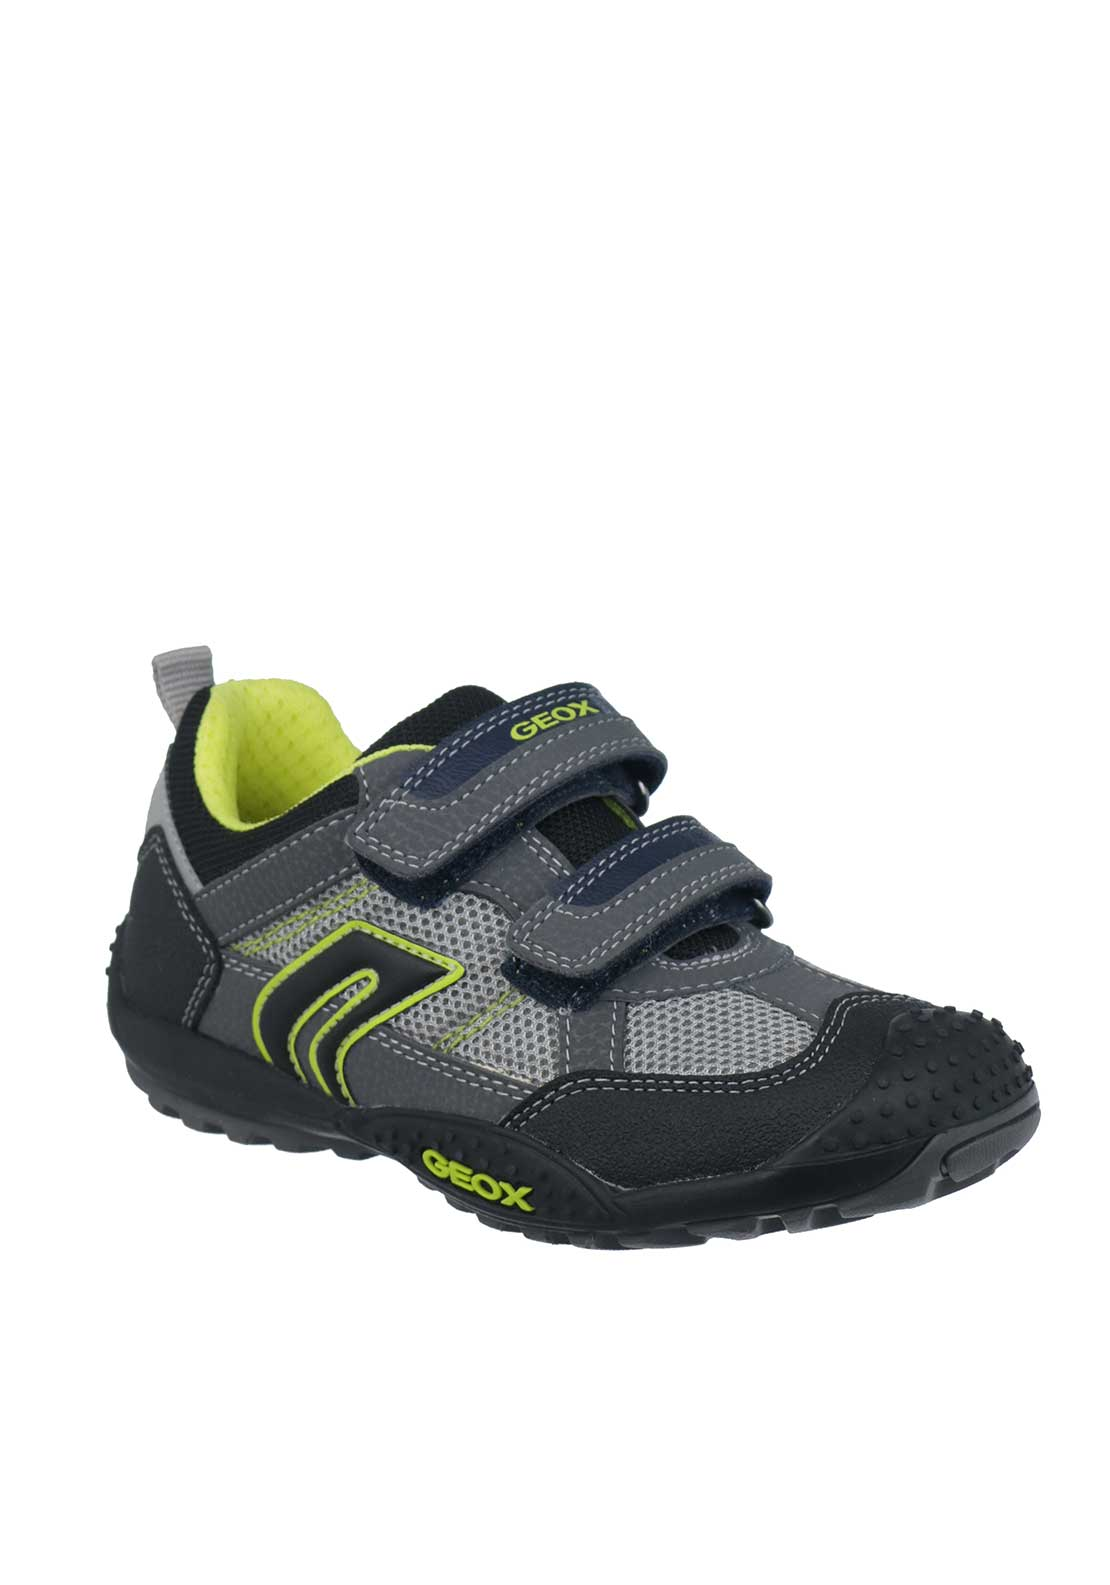 Geox Boys Velcro Strap Trainers, Grey